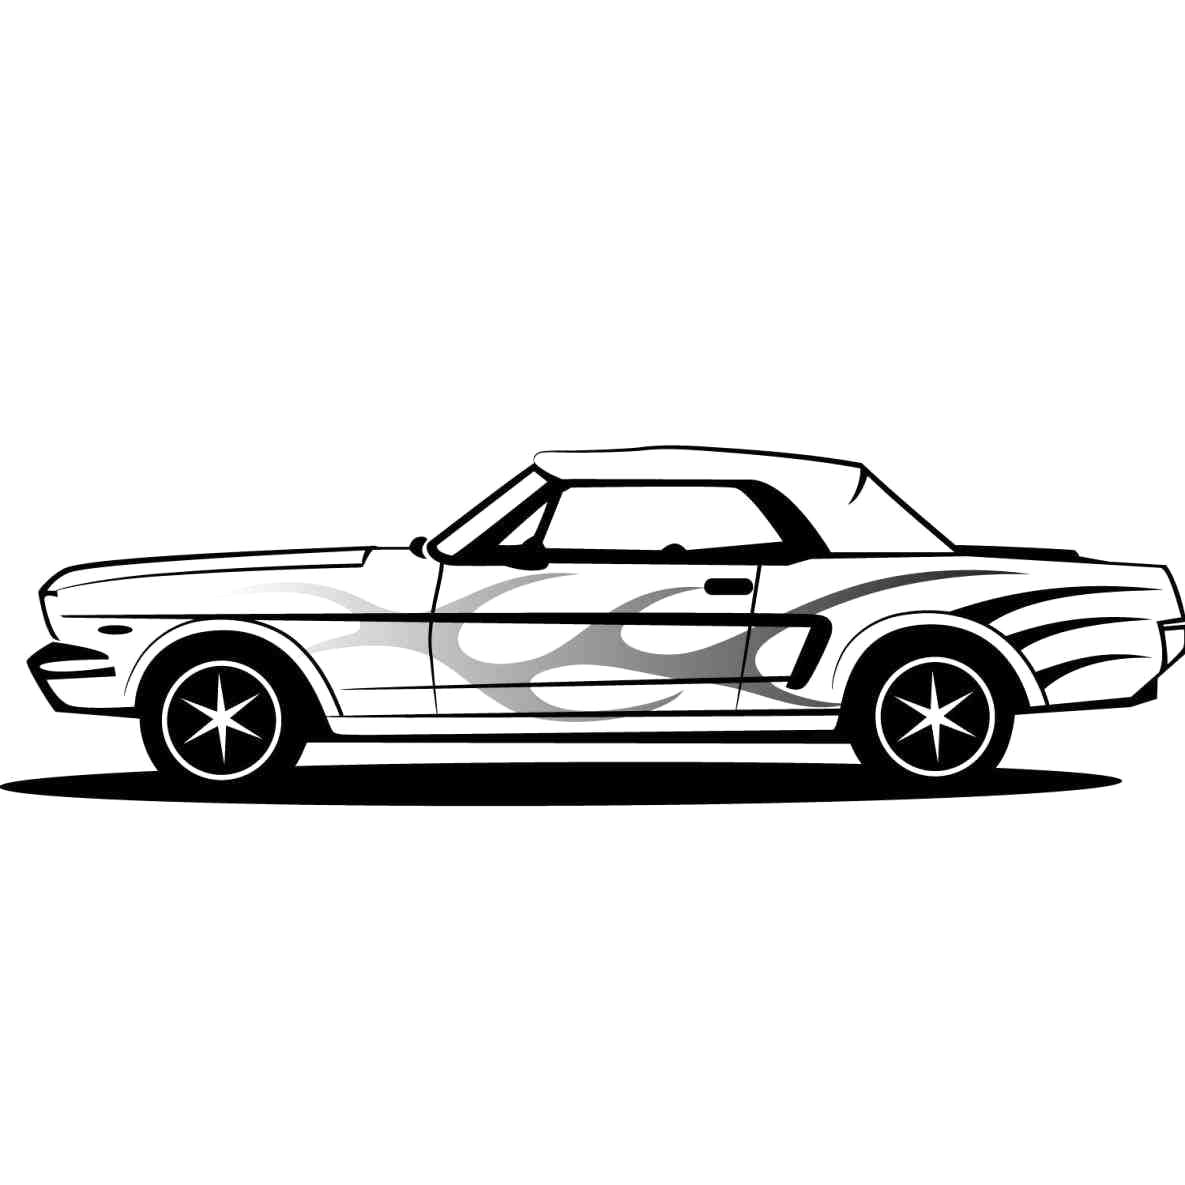 1185x1185 Free Vintage Mustang Clipart Clip Art Images Cars And Coaches